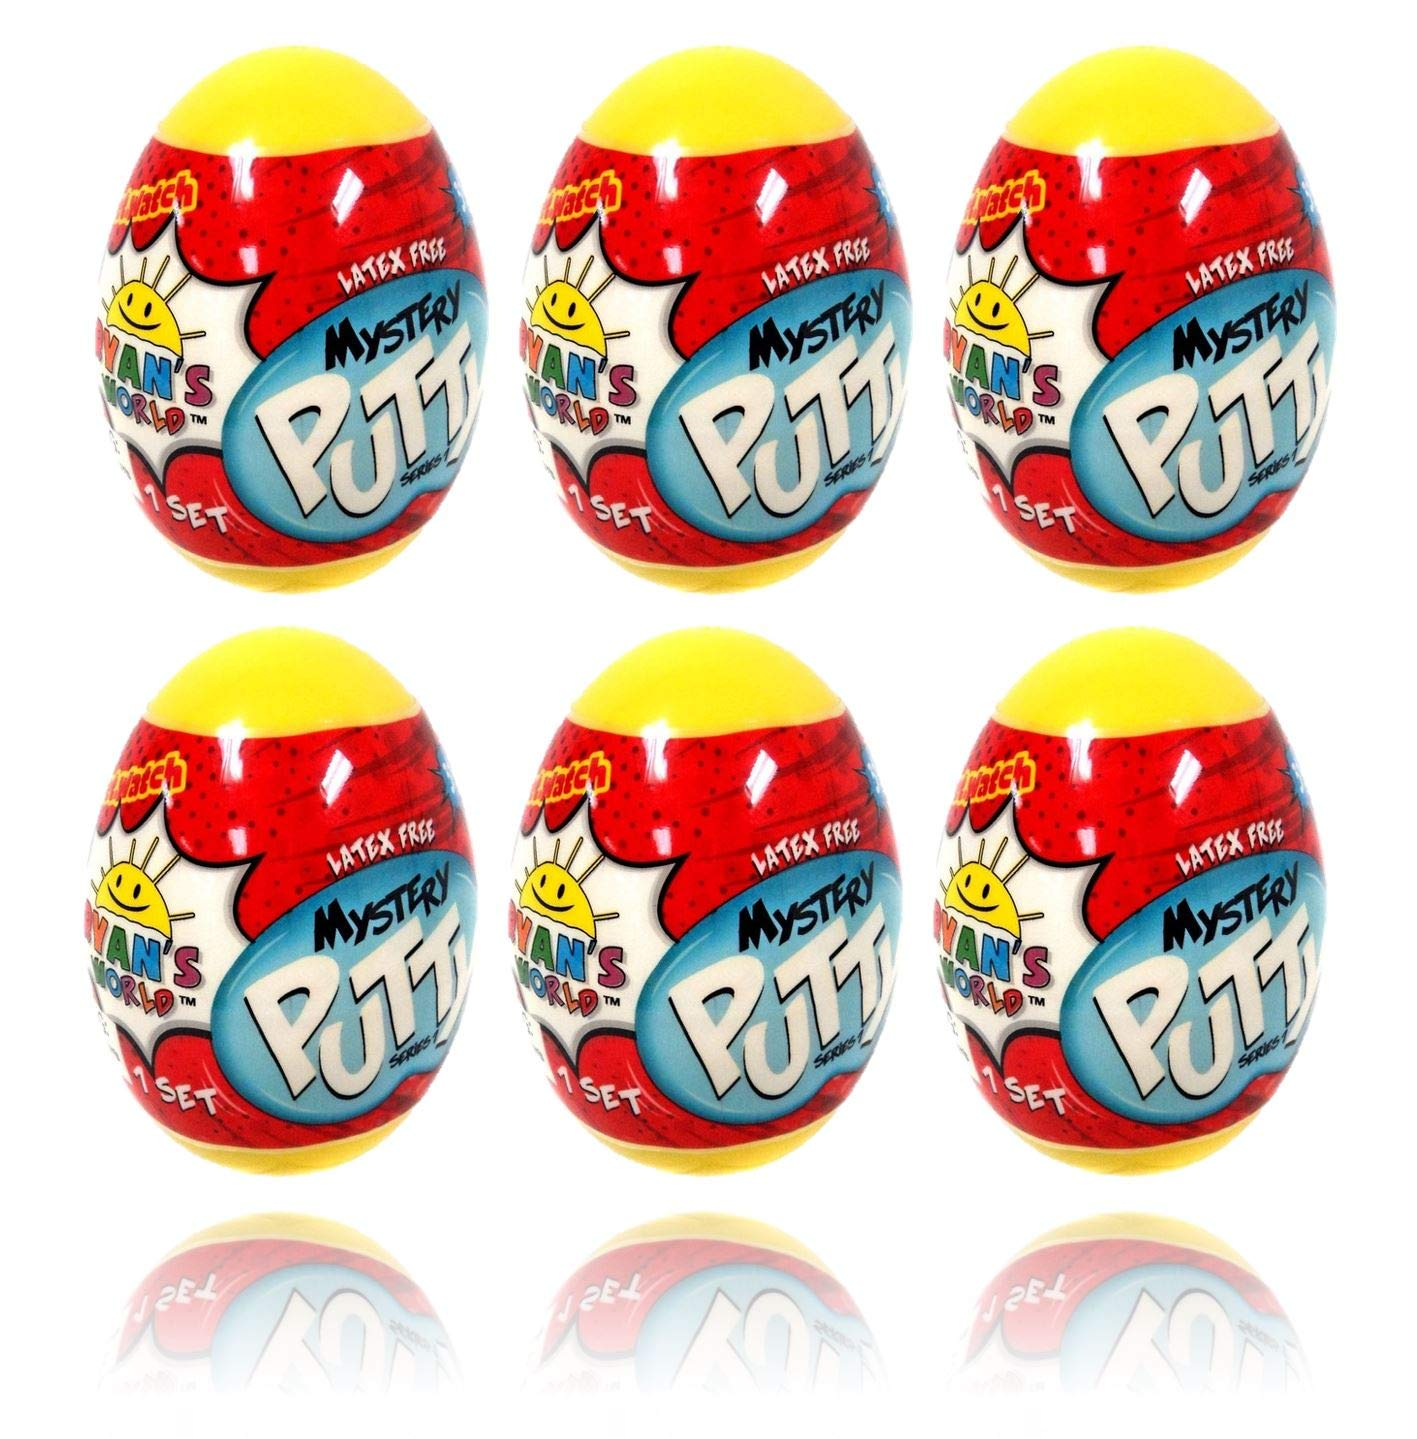 Ryan's World Mystery Putty 6 Pack (6 Small Eggs) by RYAN'S WORLD